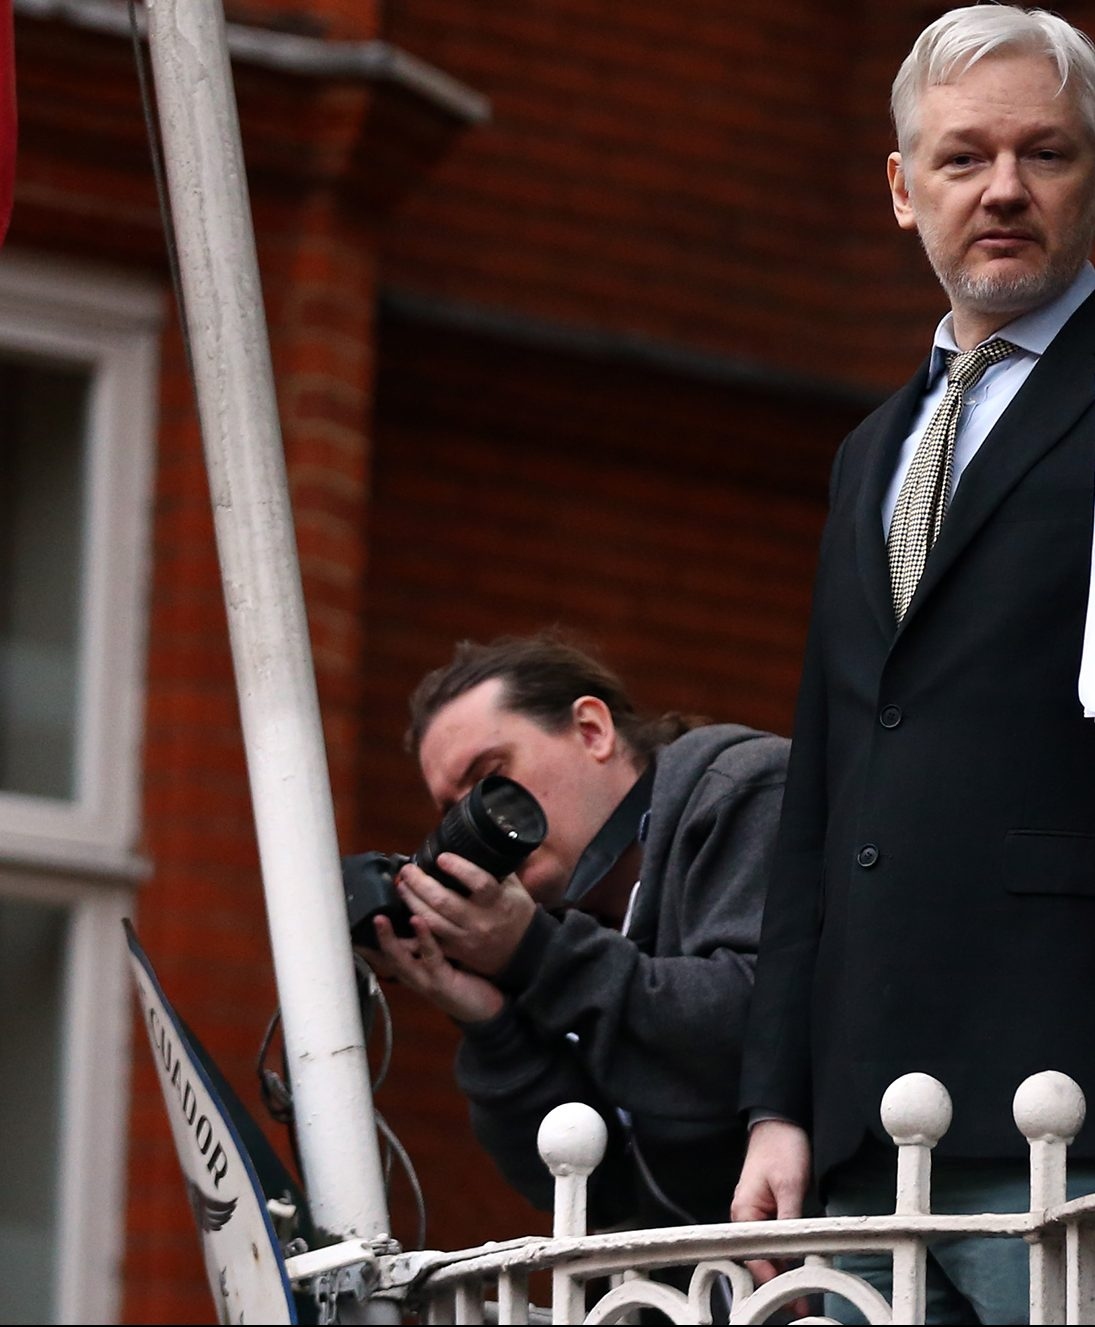 Julian Assange speaks from the balcony of the Ecuadorian embassy where he continues to seek asylum following an extradition request from Sweden in 2012 (Getty Images)